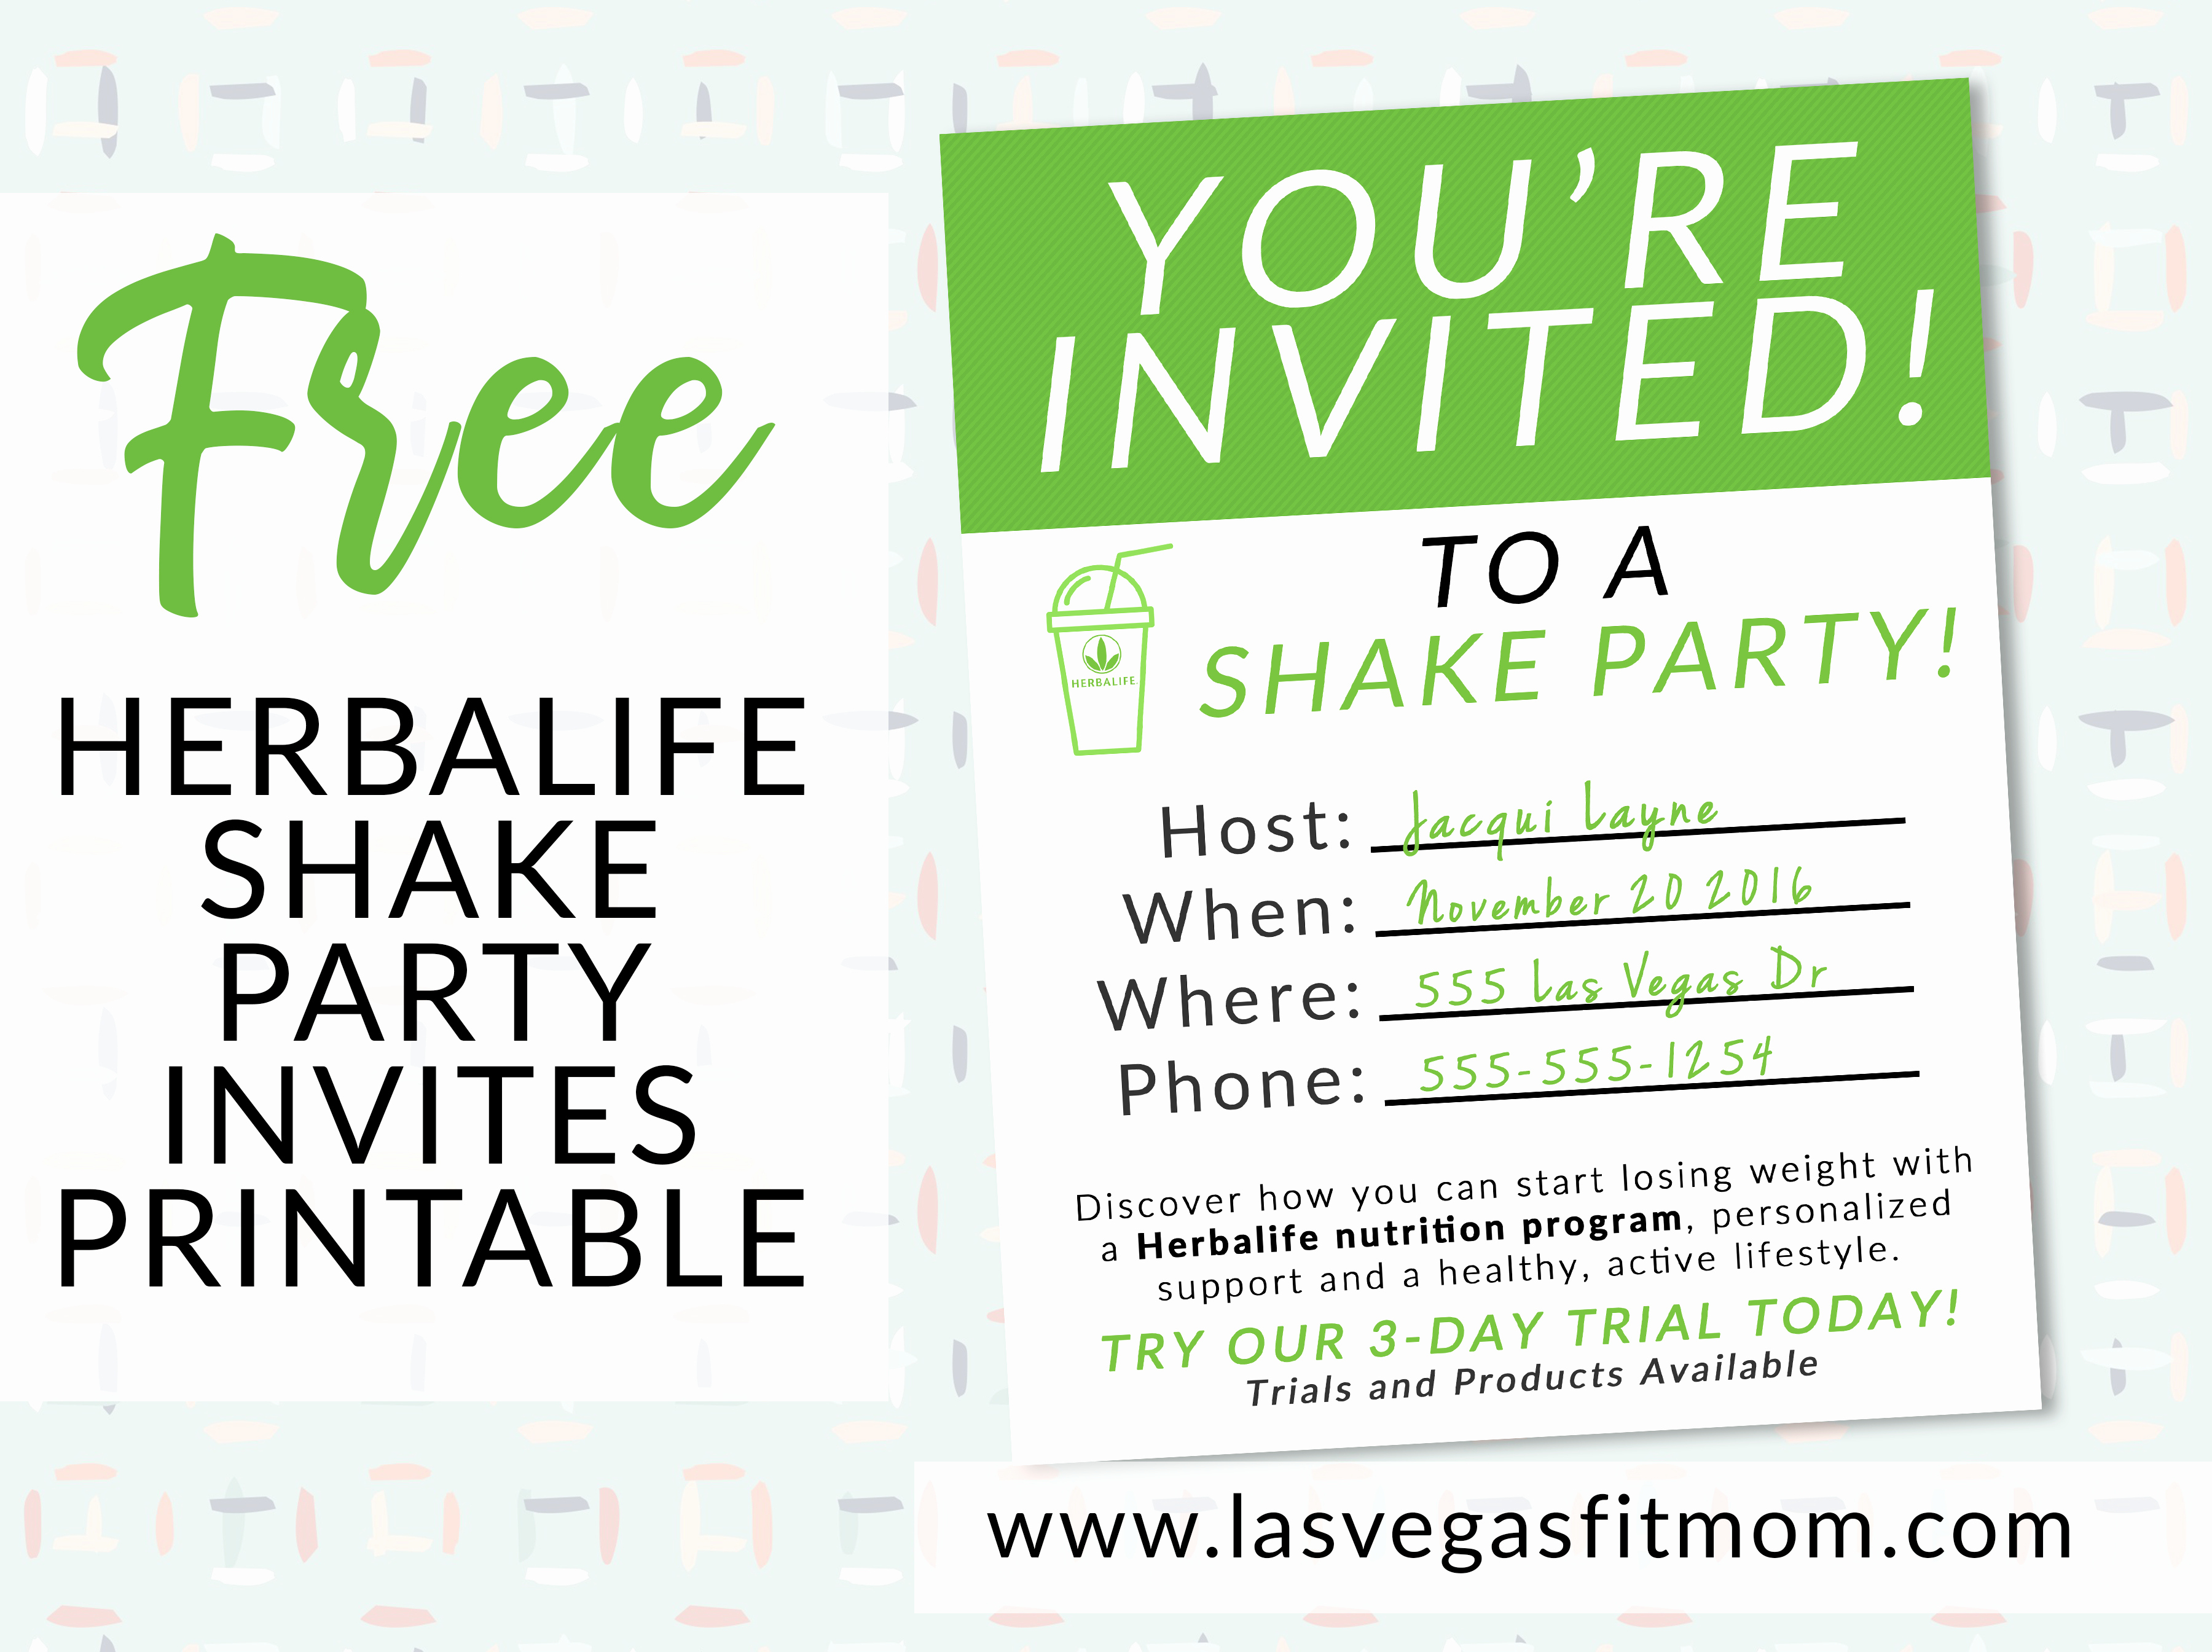 Herbalife Shake Party Luxury Herbalife Shake Party Invites – Free Printable – Las Vegas